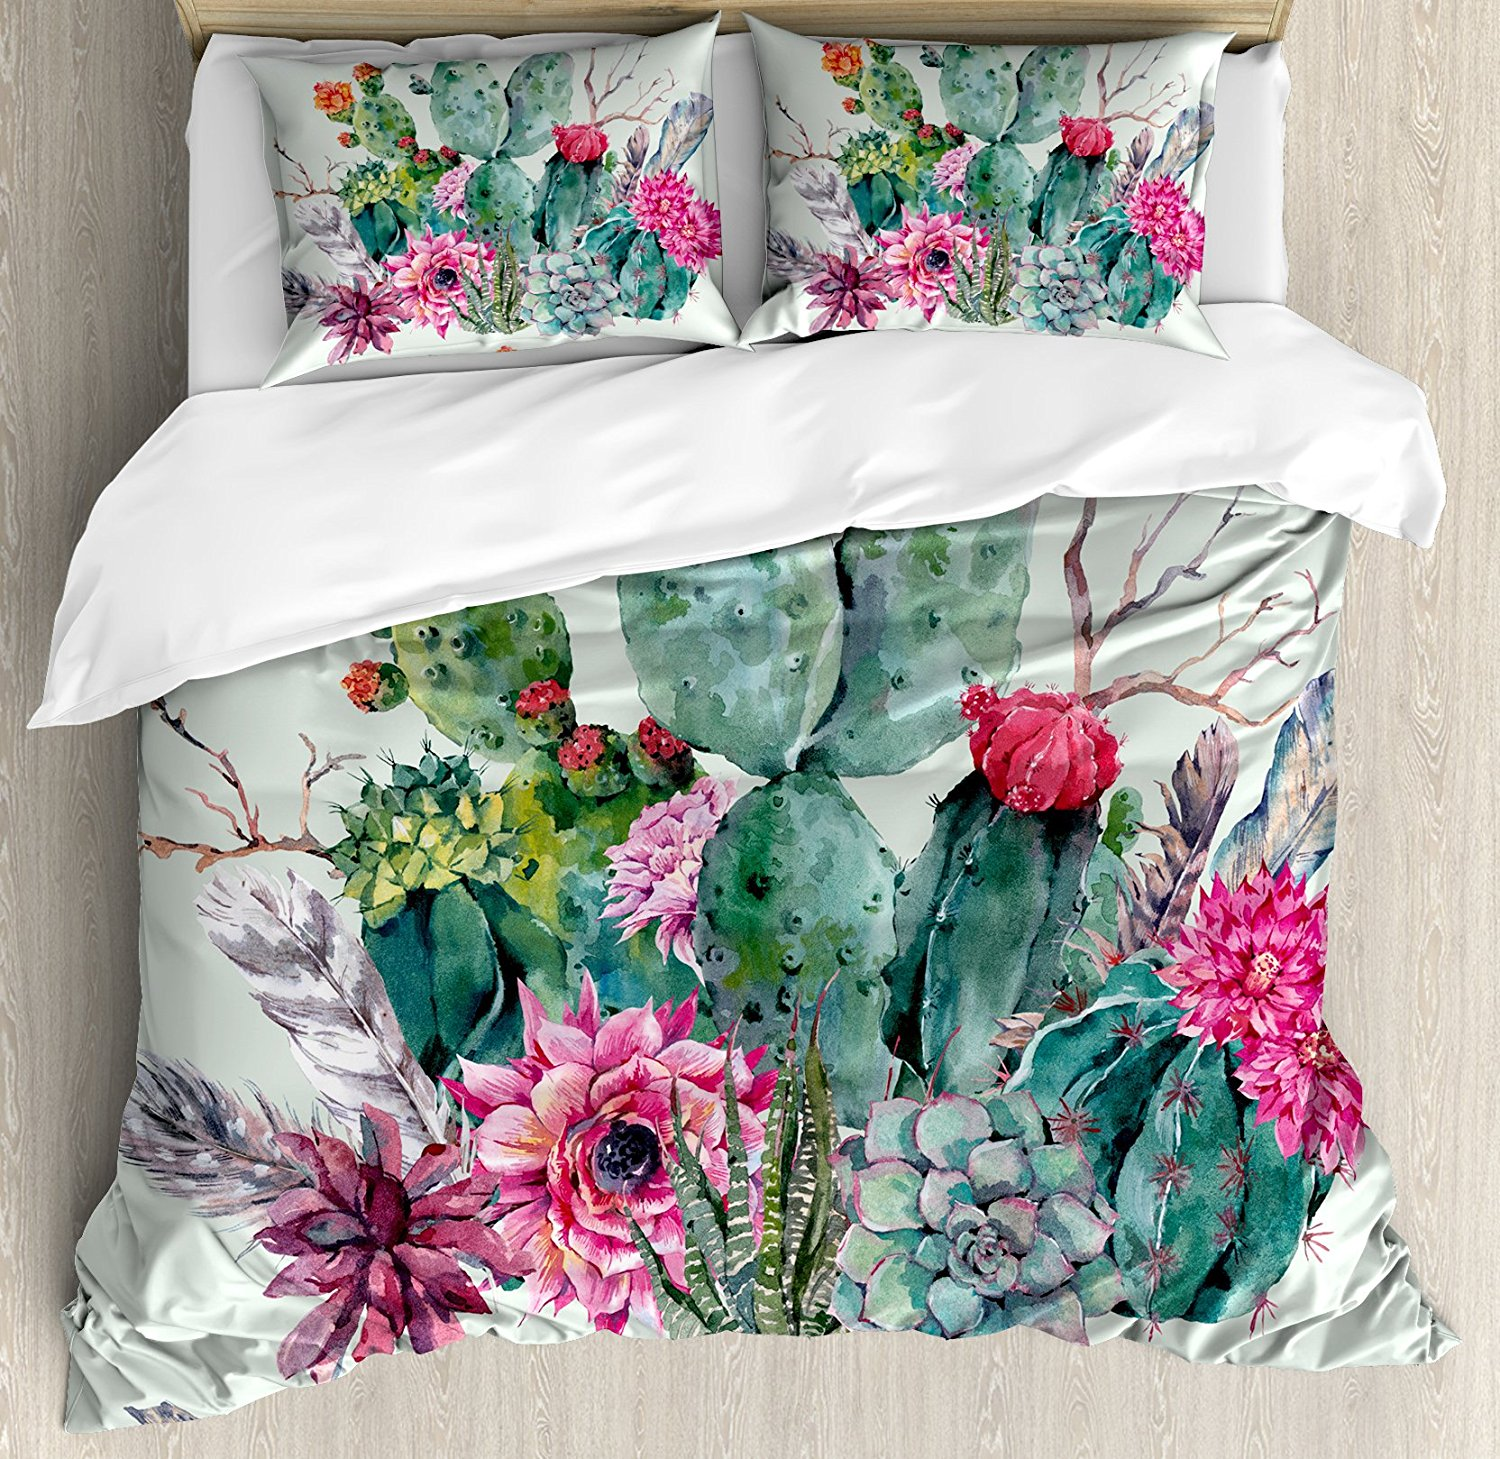 15 Boho Bedroom Designs: Cactus Decor Duvet Cover Set Spring Garden With Boho Style